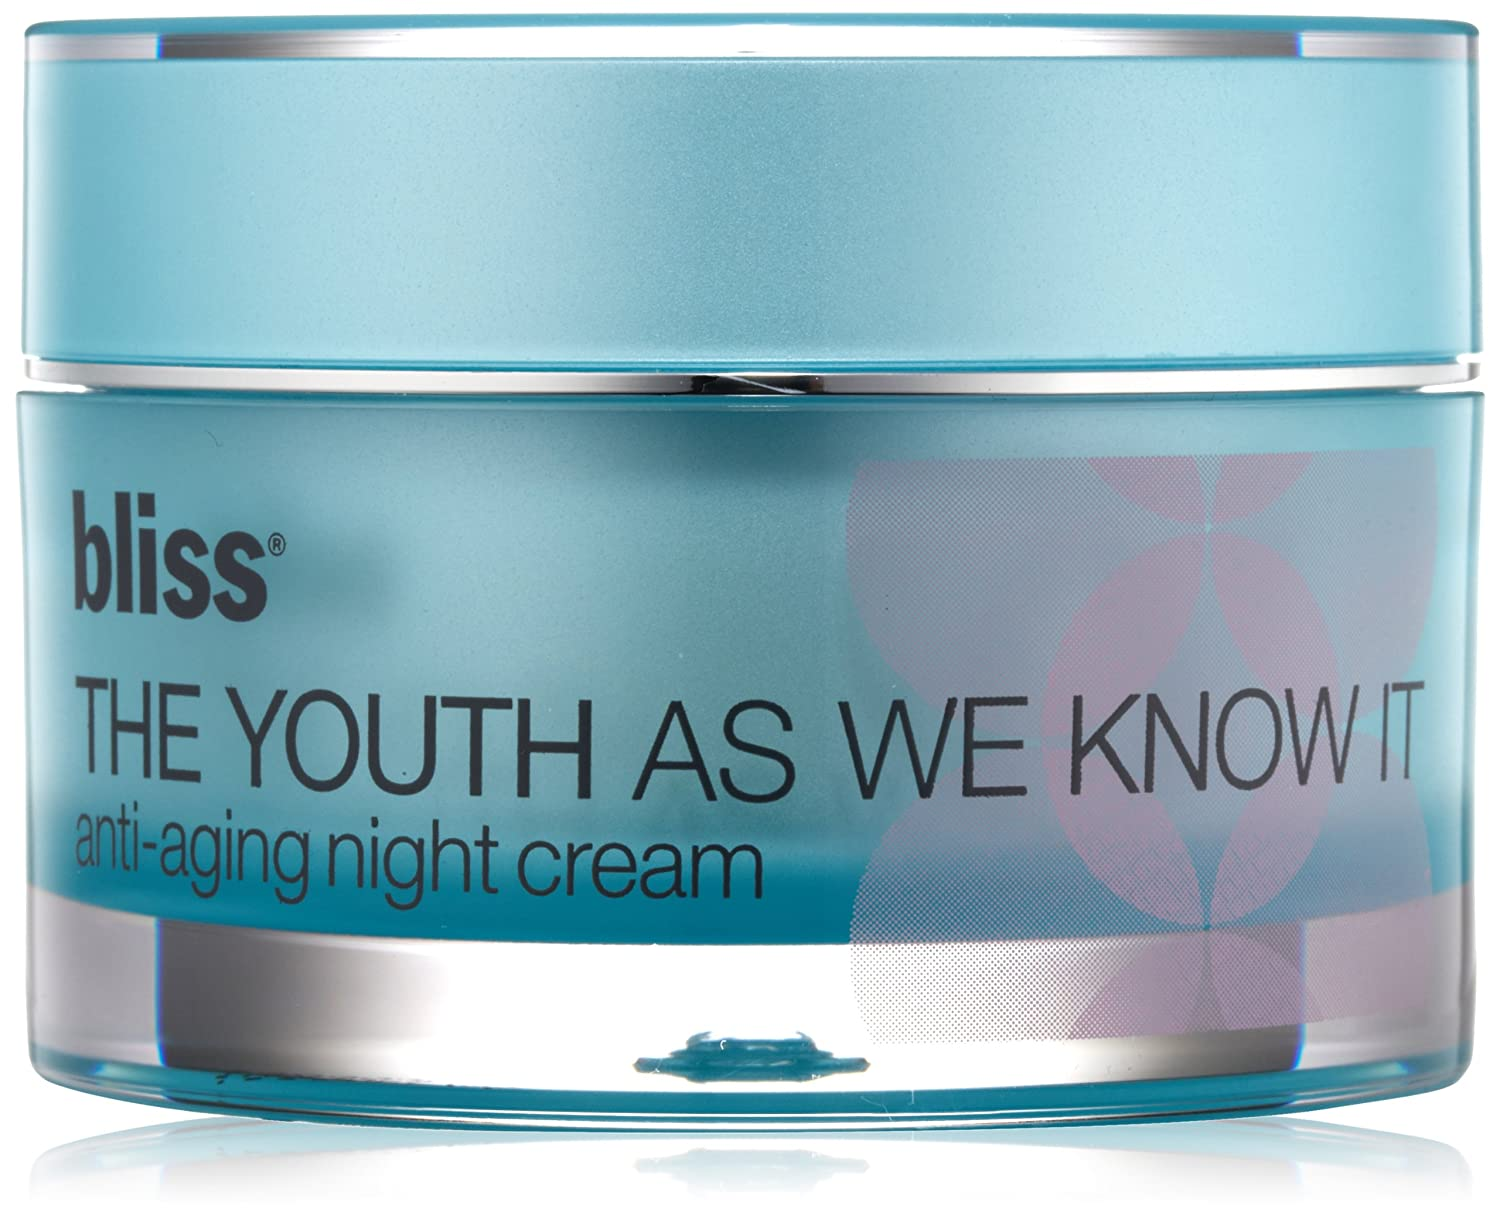 related product products/images/Bliss-TheYouthAsWeKnowIt.jpg